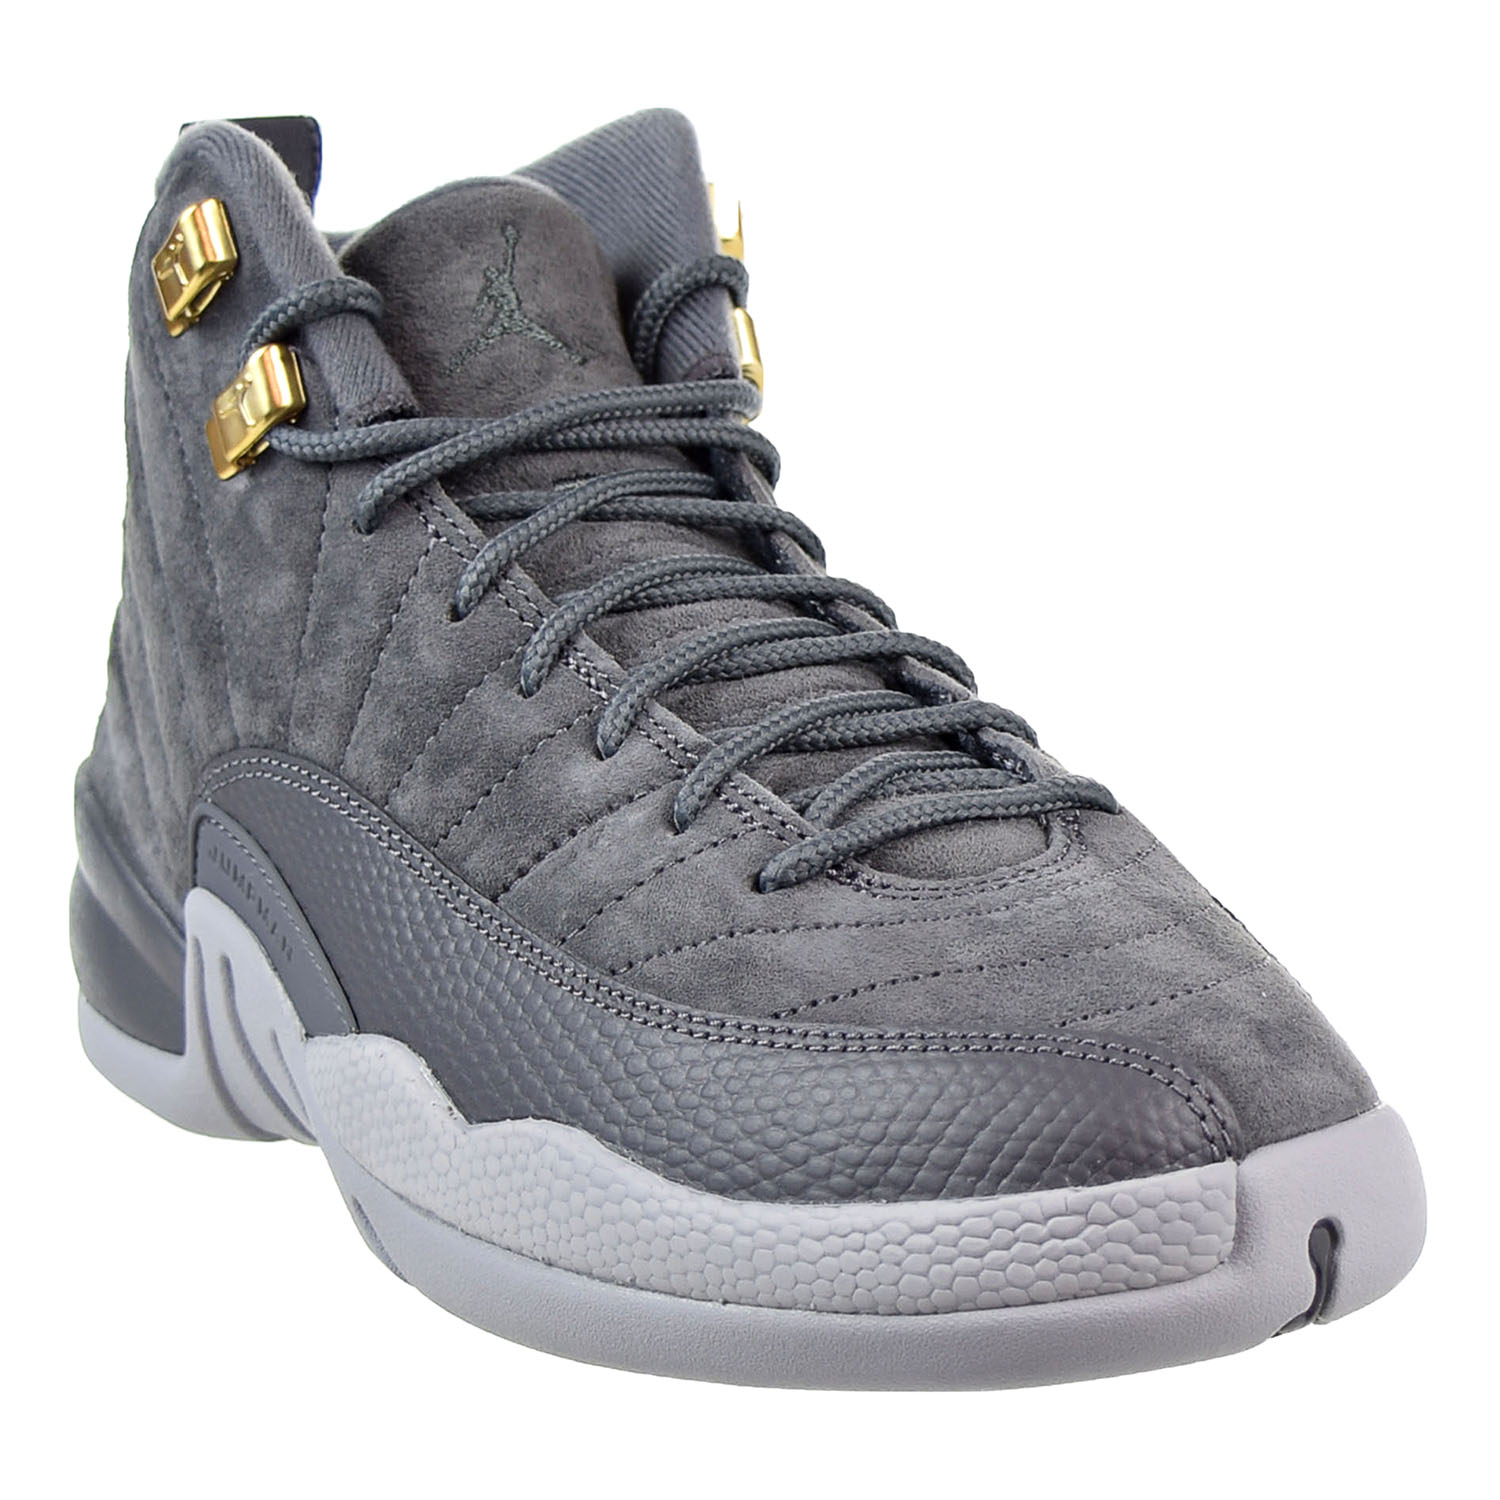 big sale ca83d 643d1 ... aliexpress jordan air jordan 12 retro bg big kids shoes dark grey dark  grey wolf grey